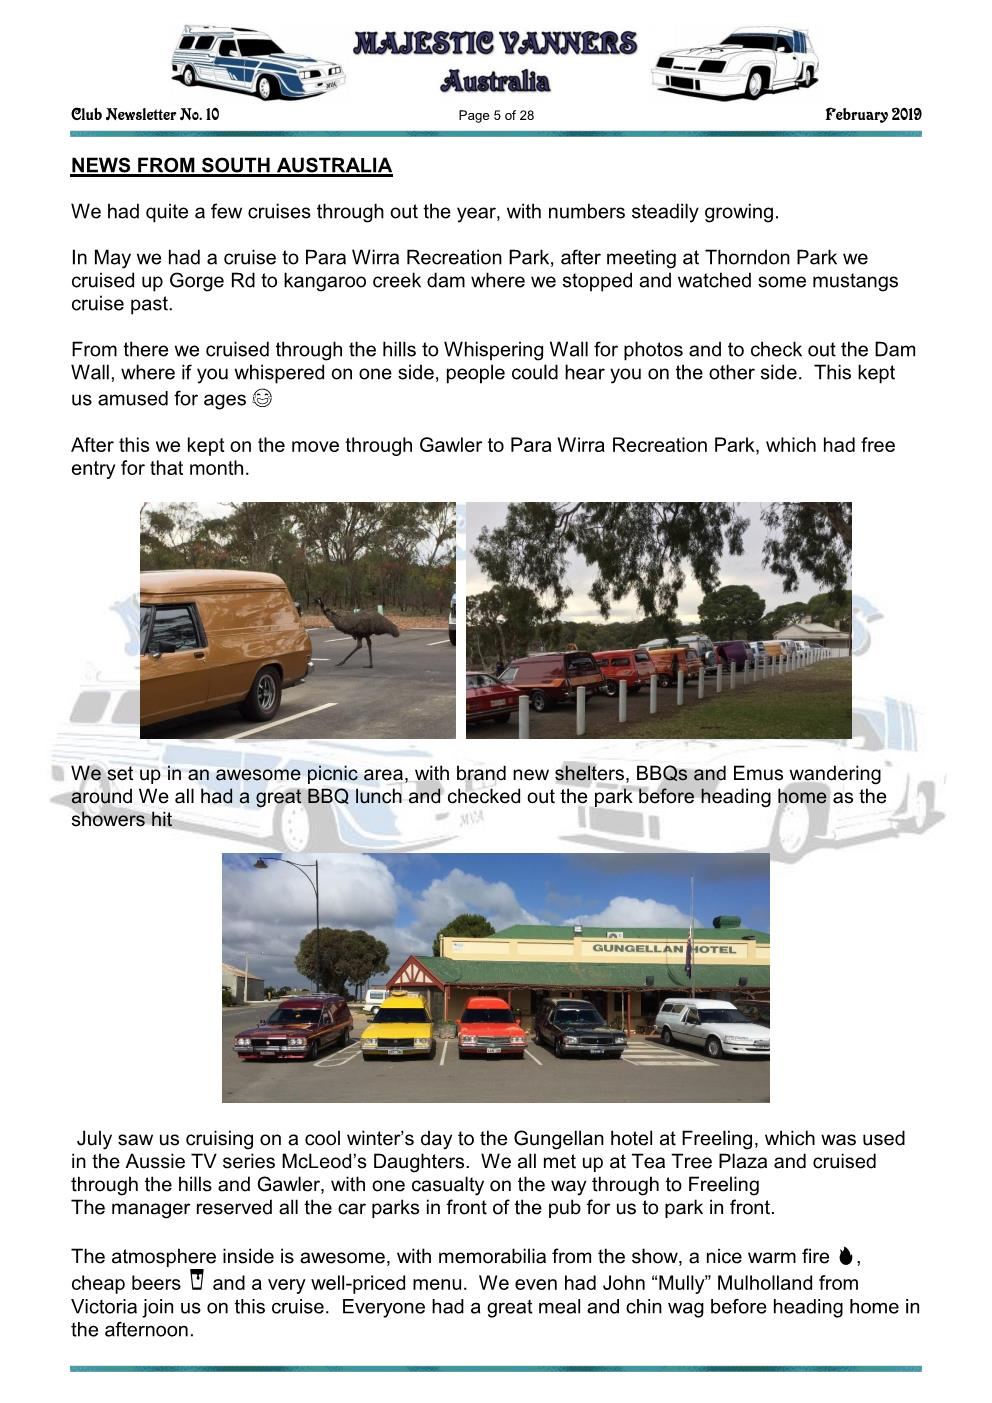 MAJESTIC VANNERS Newsletter Issue No: 10 February 2019 Mv_new14